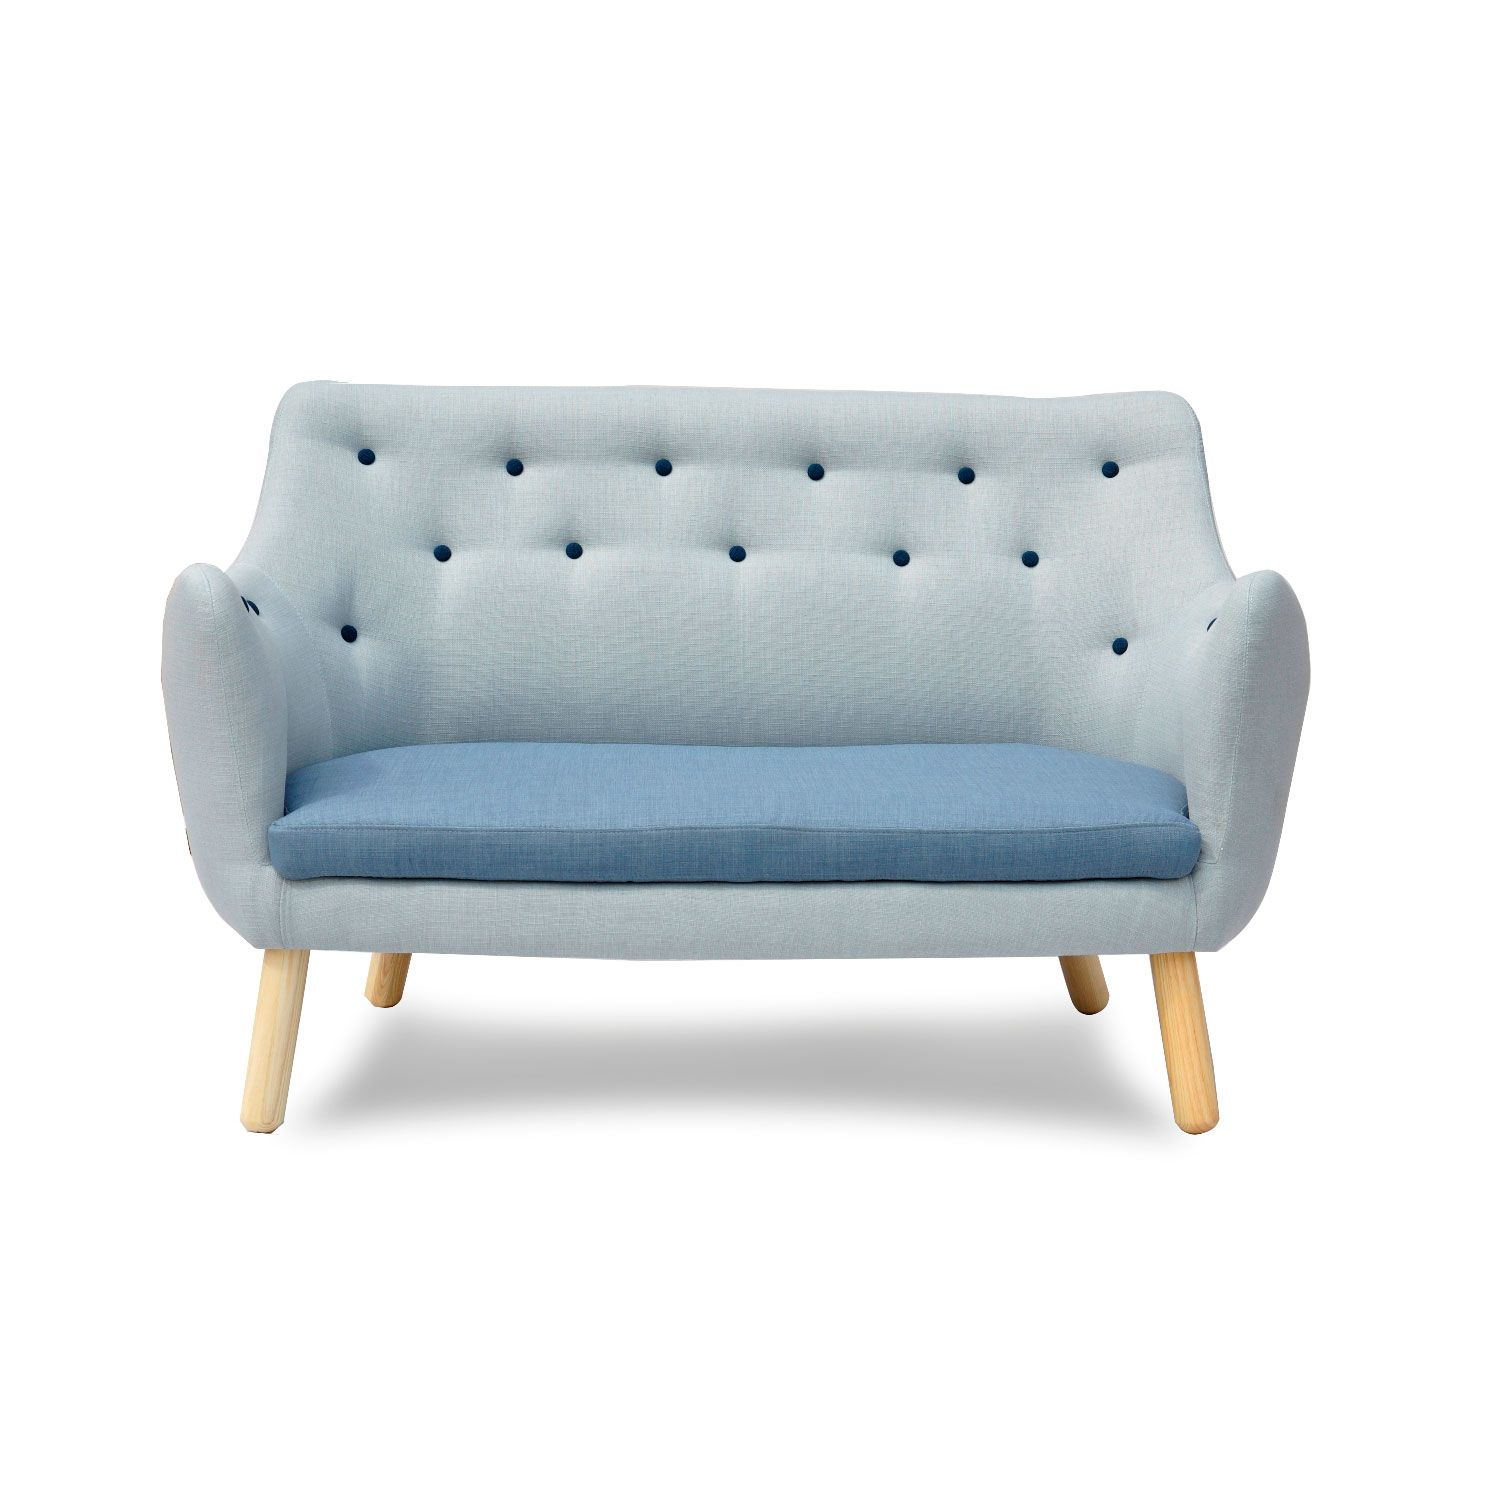 Awesome Picture Of Small Loveseat IKEA: Most Fitted Furniture For An Apartment Size  Living Room